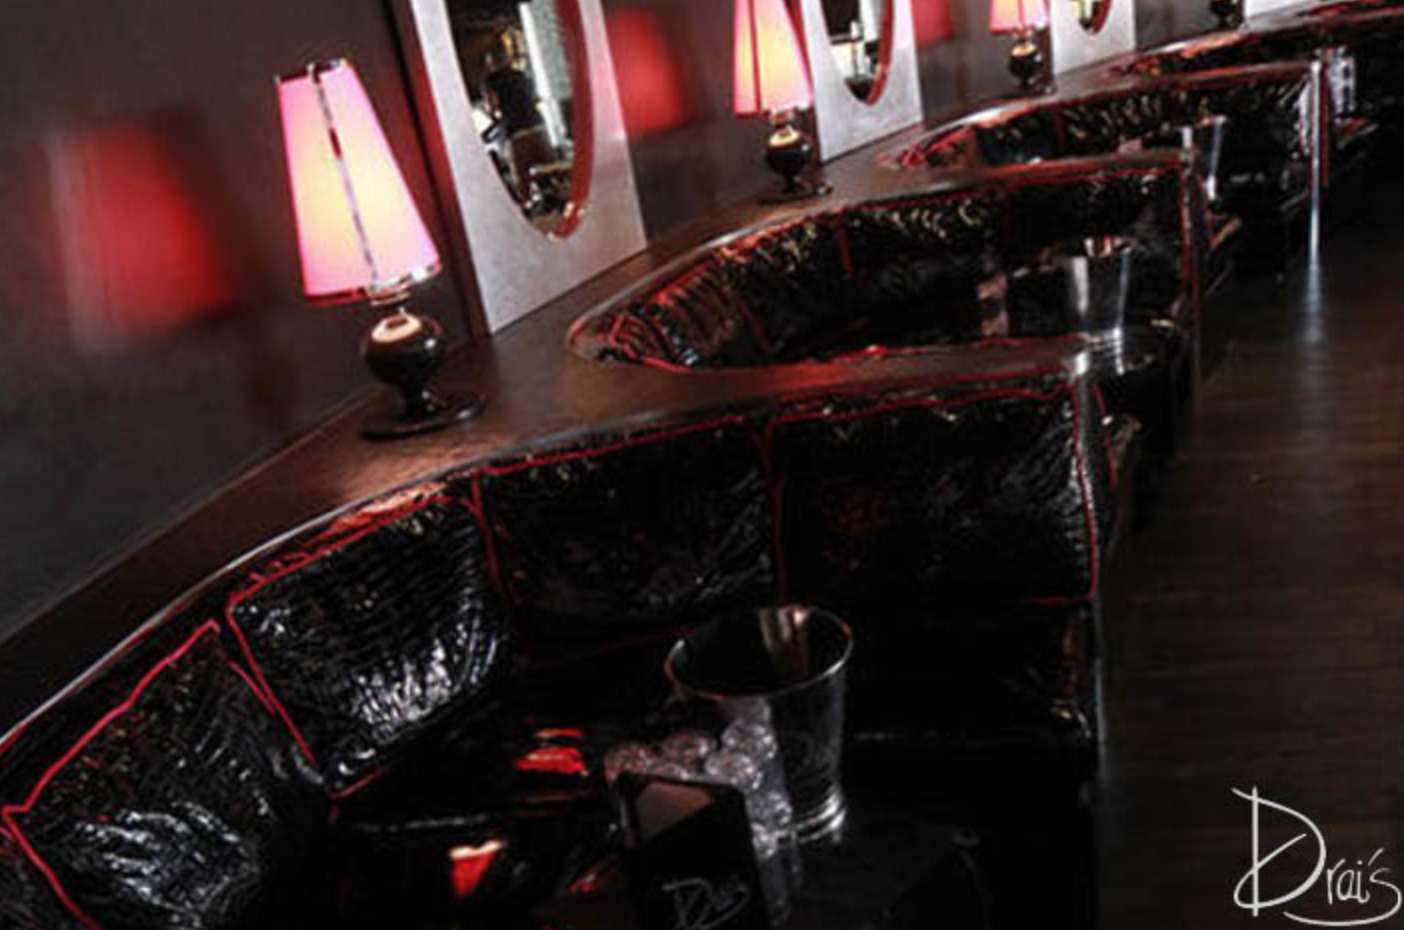 Drai's Elevated VIP Booth